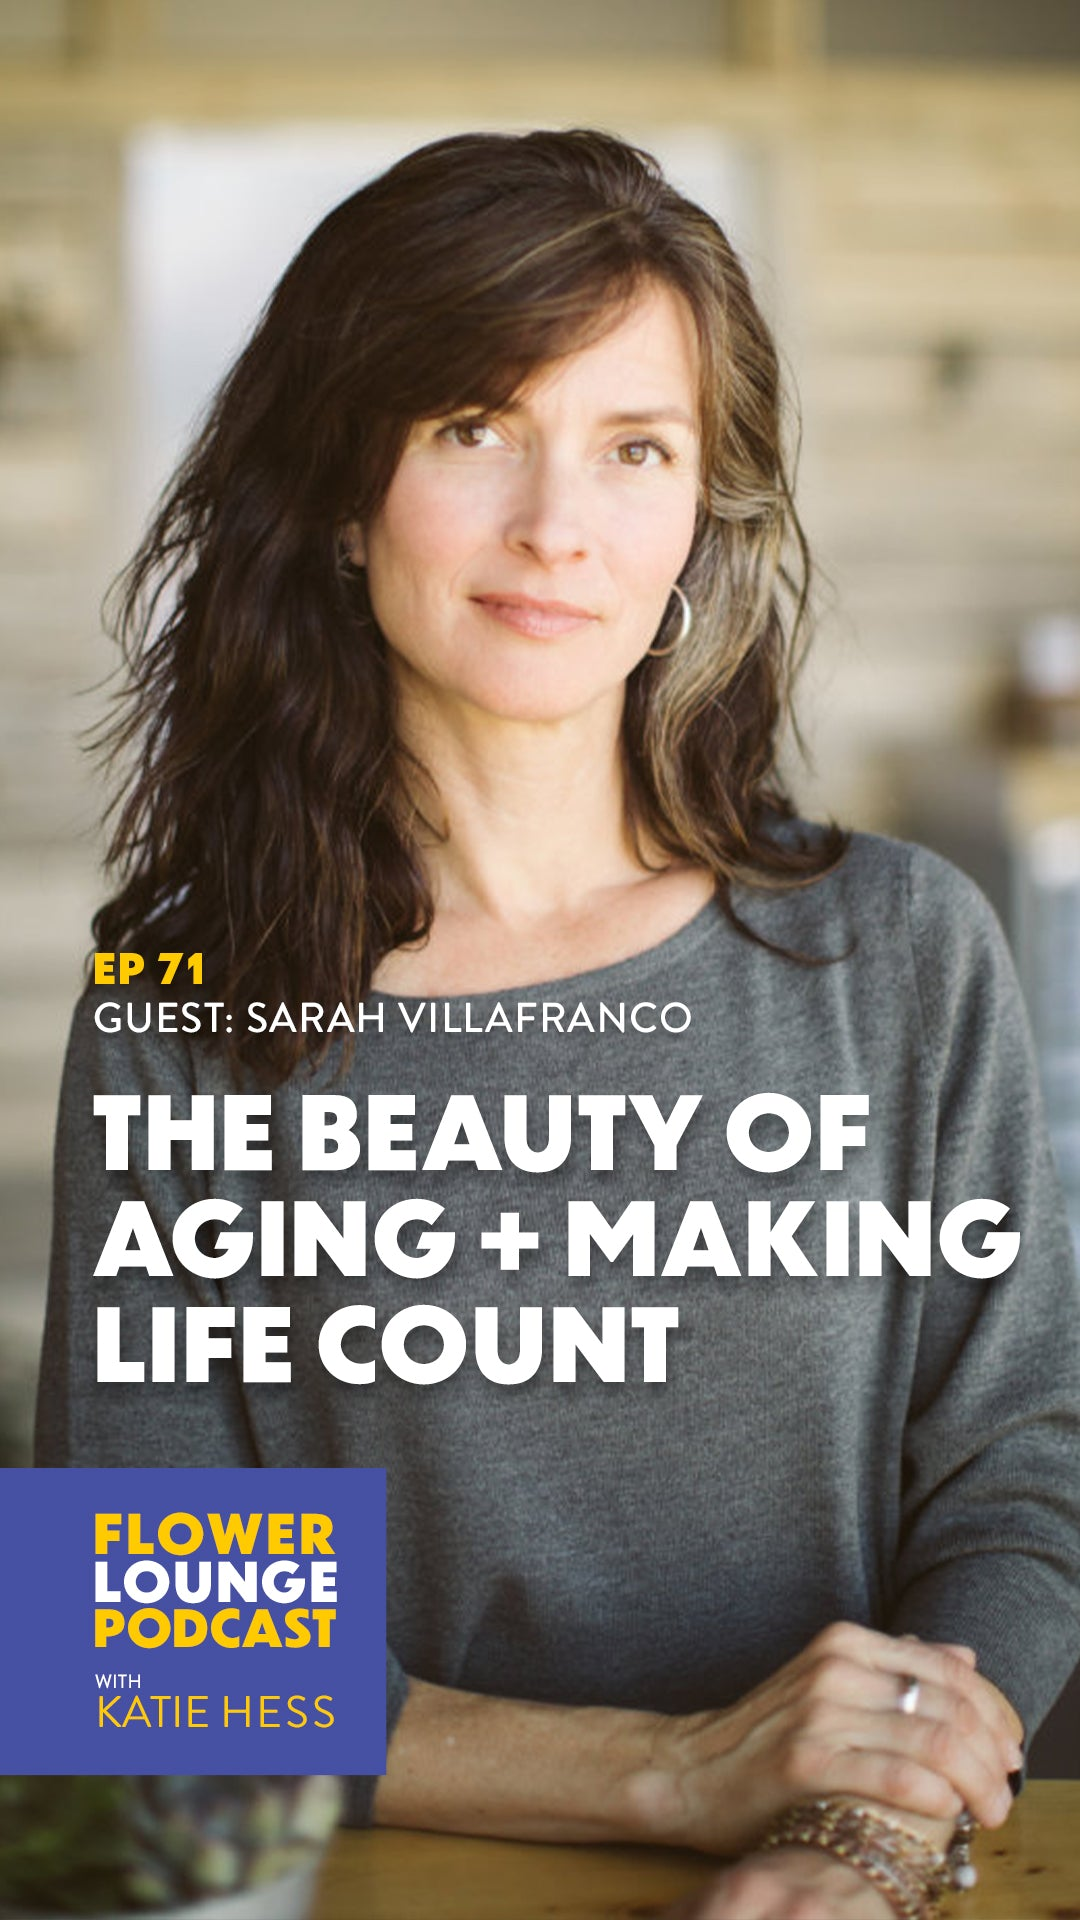 The Beauty of Aging + Making Life Count with Sarah Villafranco of Osmia Organics on the Flowerlounge Podcast with Katie Hess